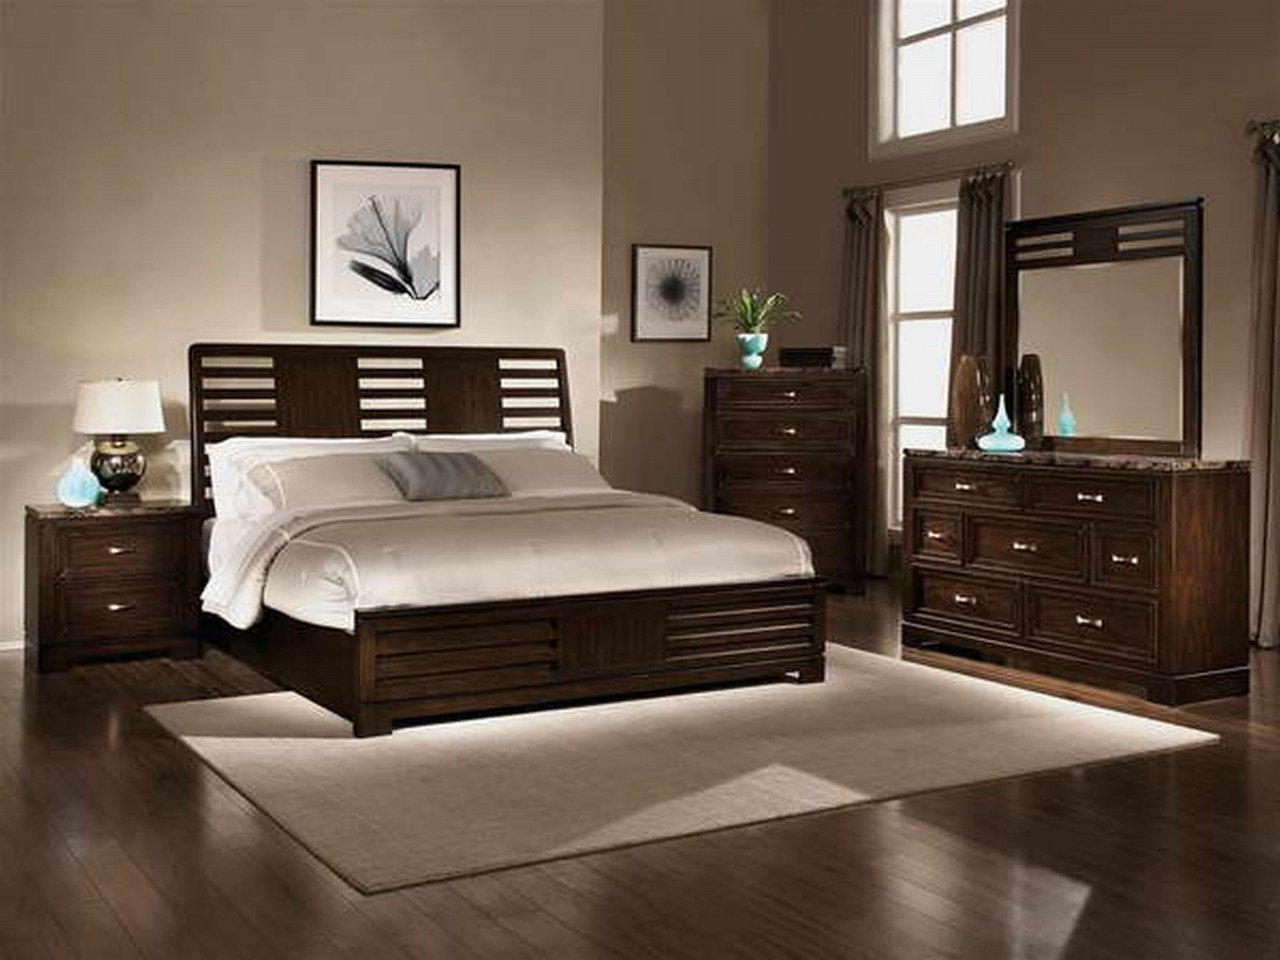 Best Bedroom Colors For Small Rooms Bedroom Wall Colors With Pictures